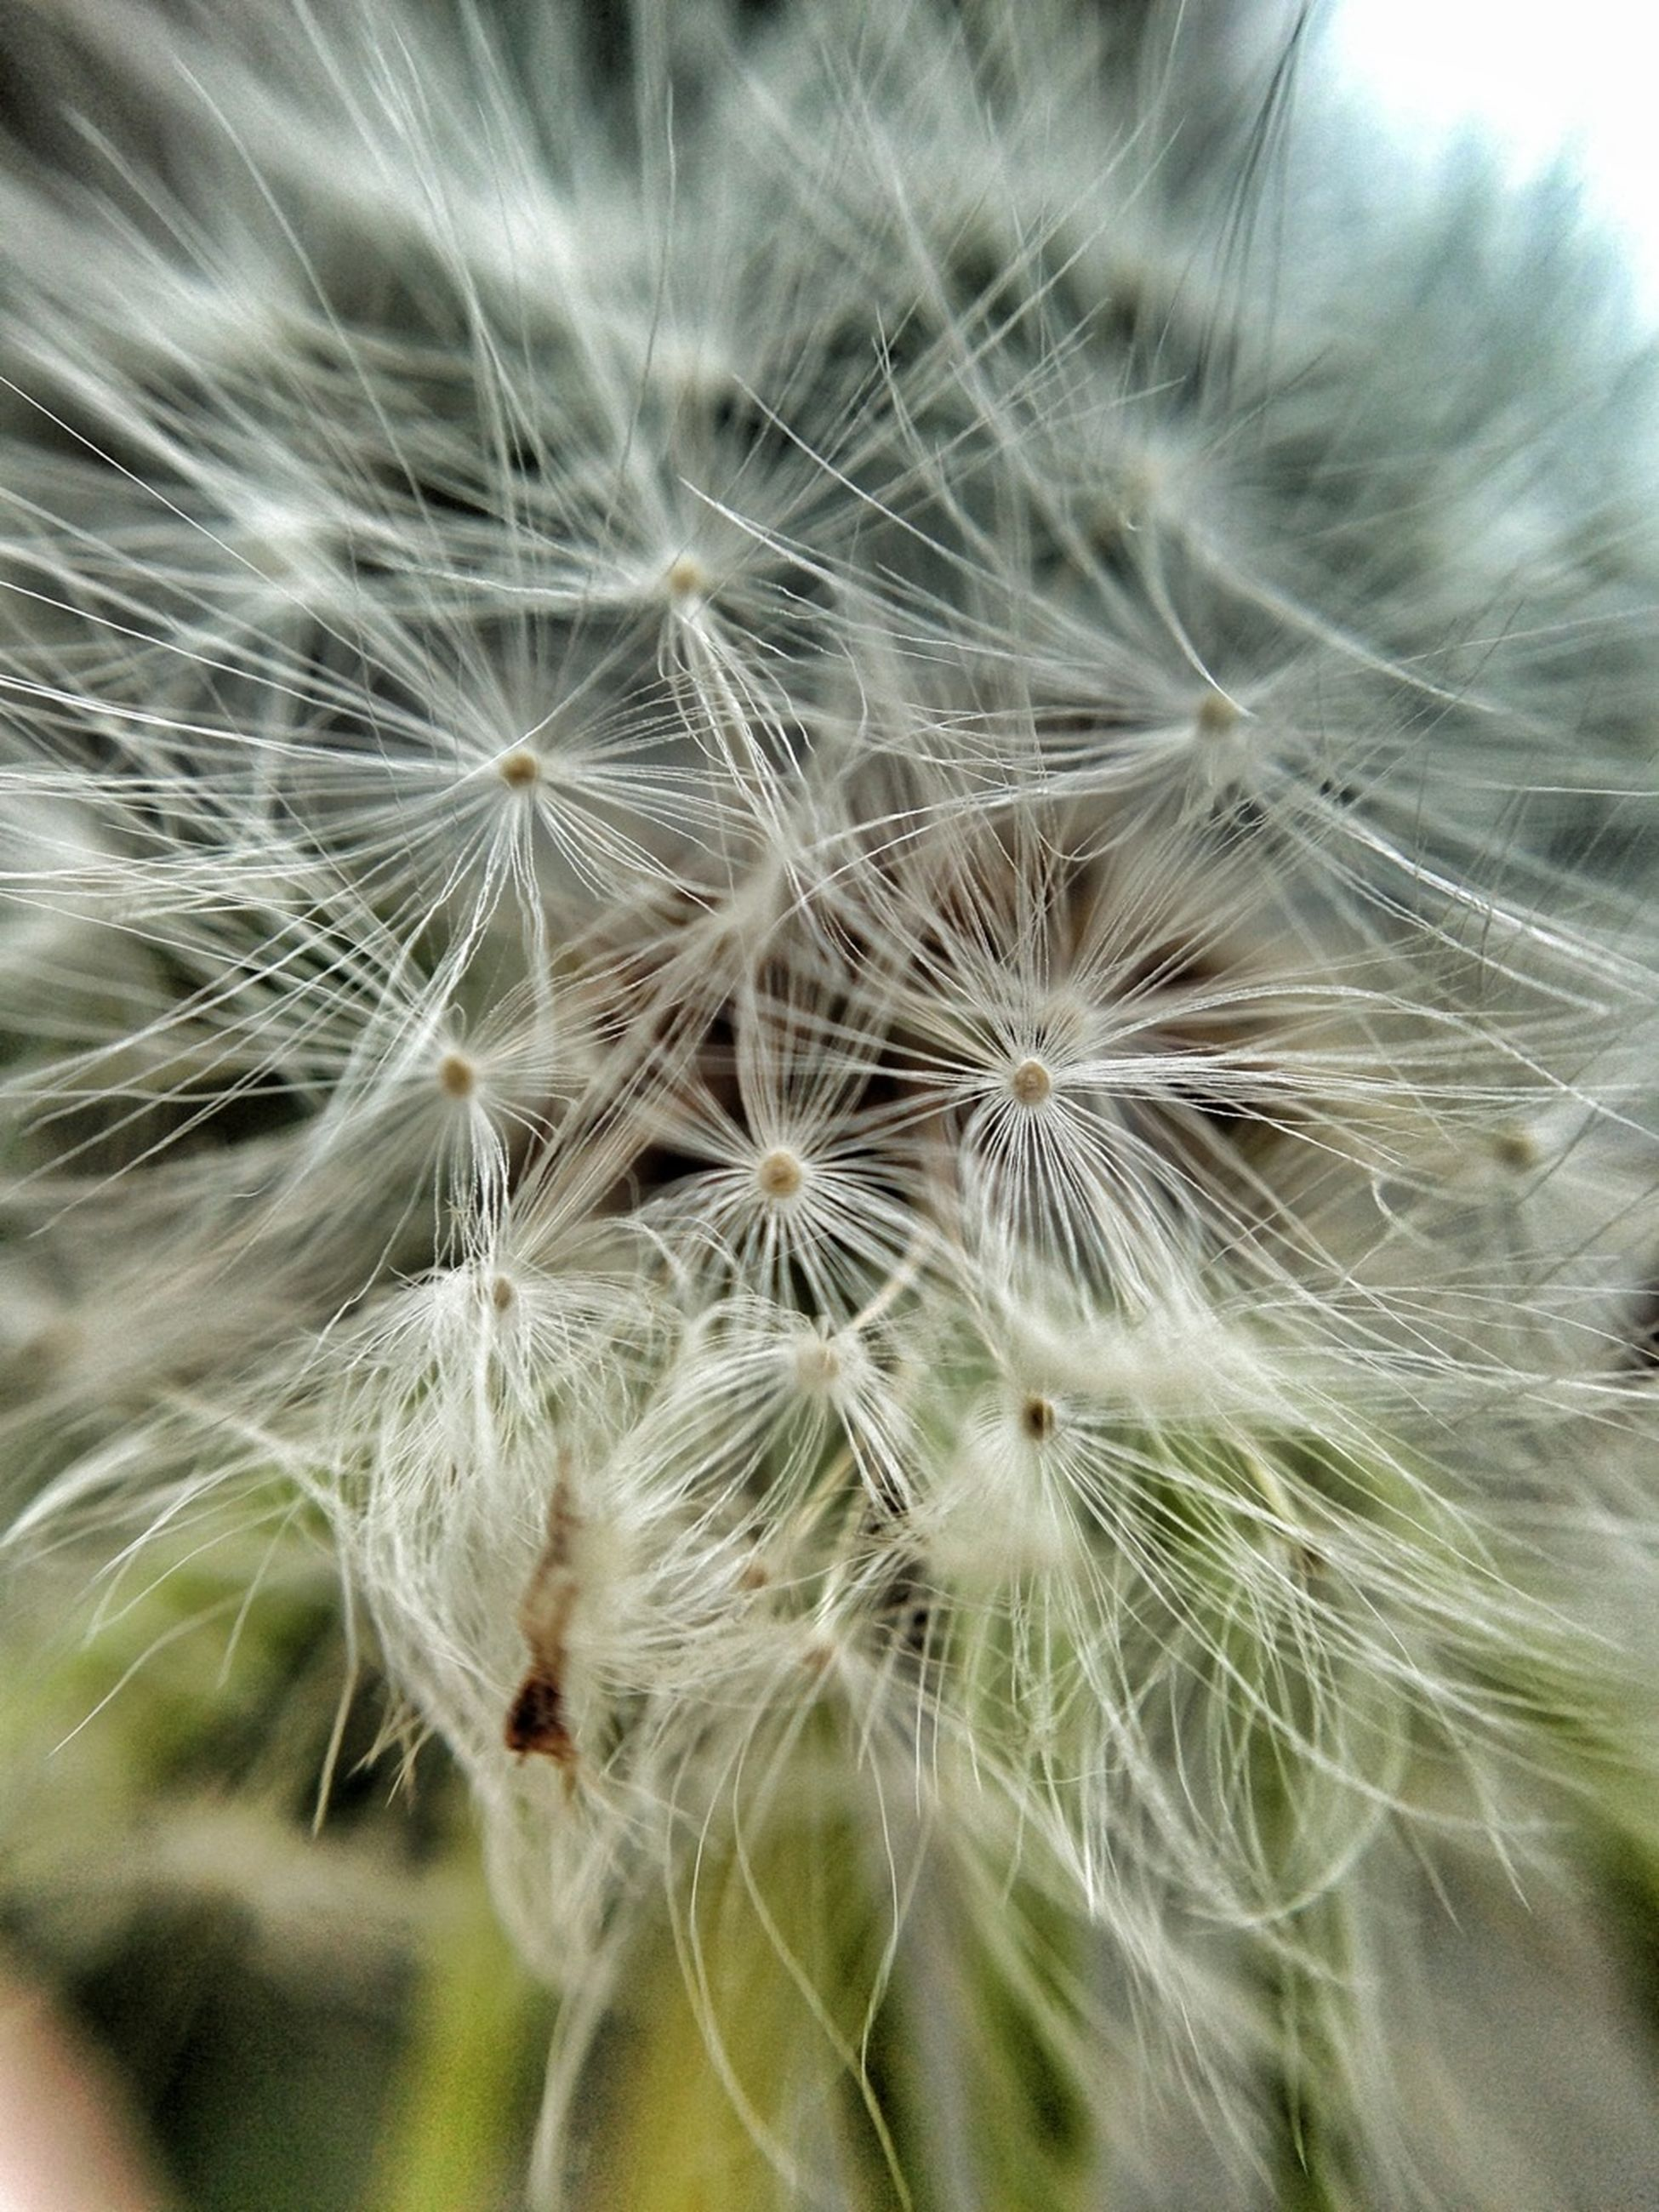 dandelion, flower, fragility, close-up, growth, freshness, softness, flower head, nature, beauty in nature, selective focus, focus on foreground, white color, plant, single flower, wildflower, seed, dandelion seed, uncultivated, day